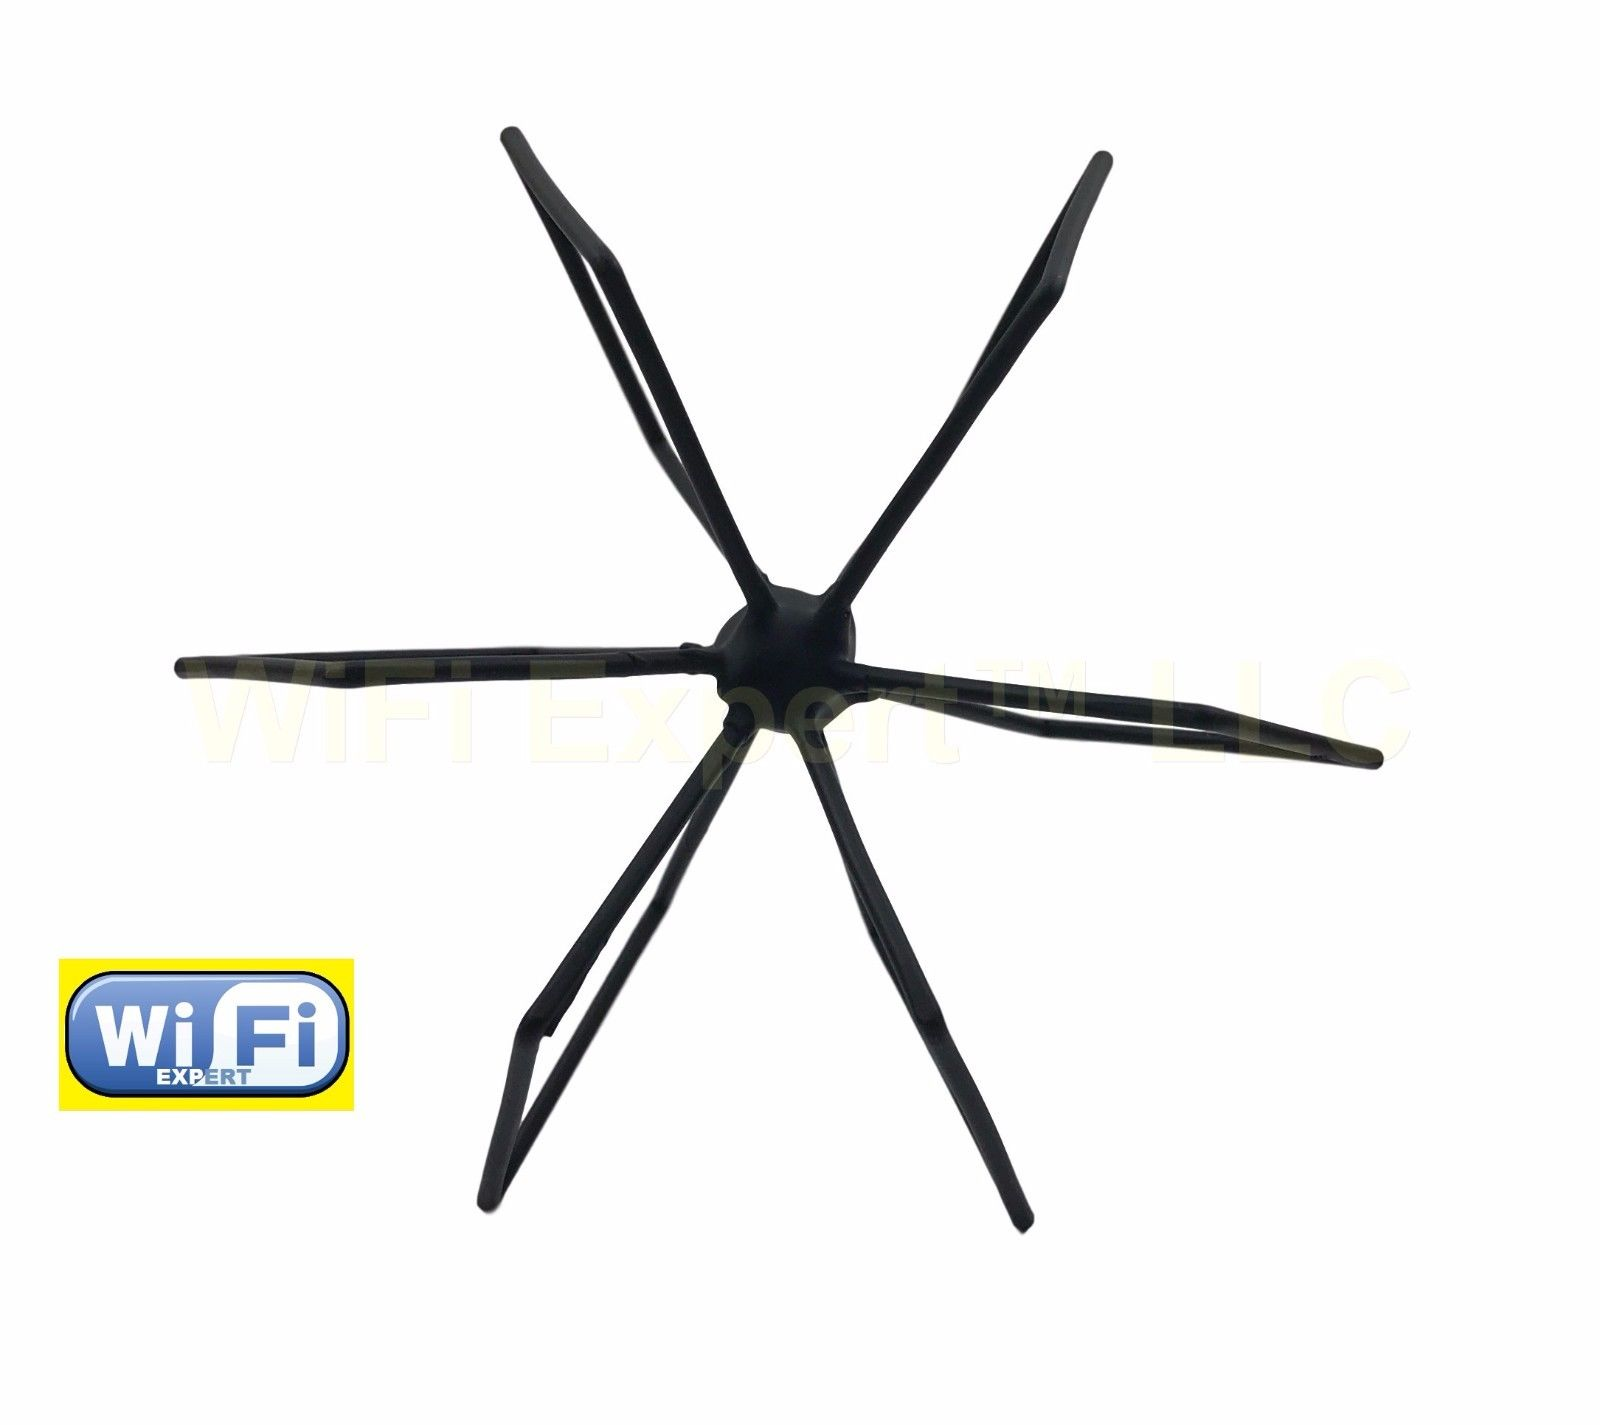 Wifi Antenna 2 4ghz Omni Triple Biquad Mach 4s Antenna For